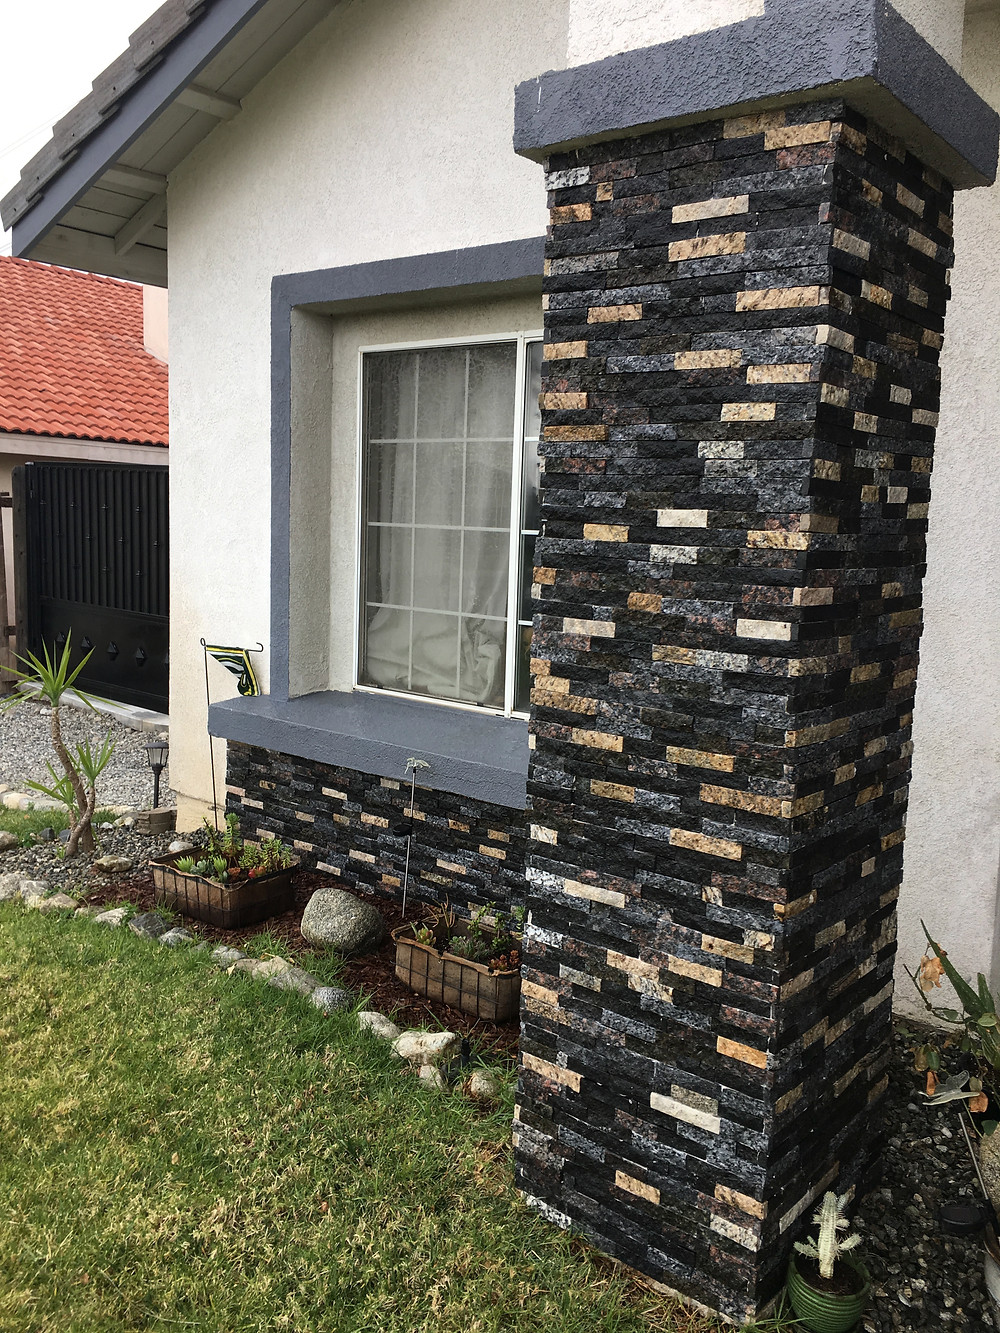 Chiseled face stone on home exterior